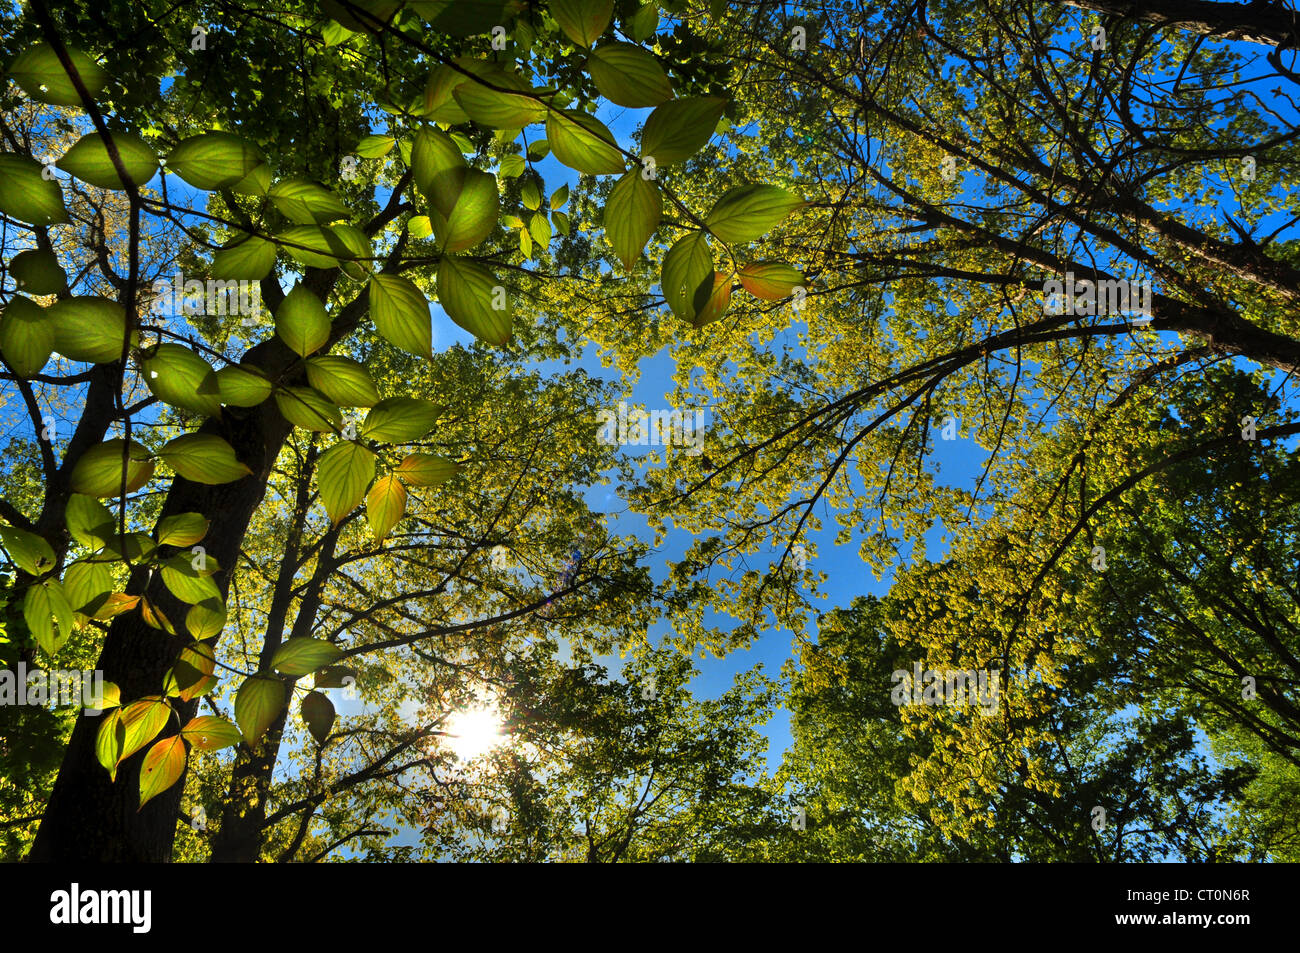 Looking up through the spring green growth of the forest with the sun shinning in the blue sky - Stock Image